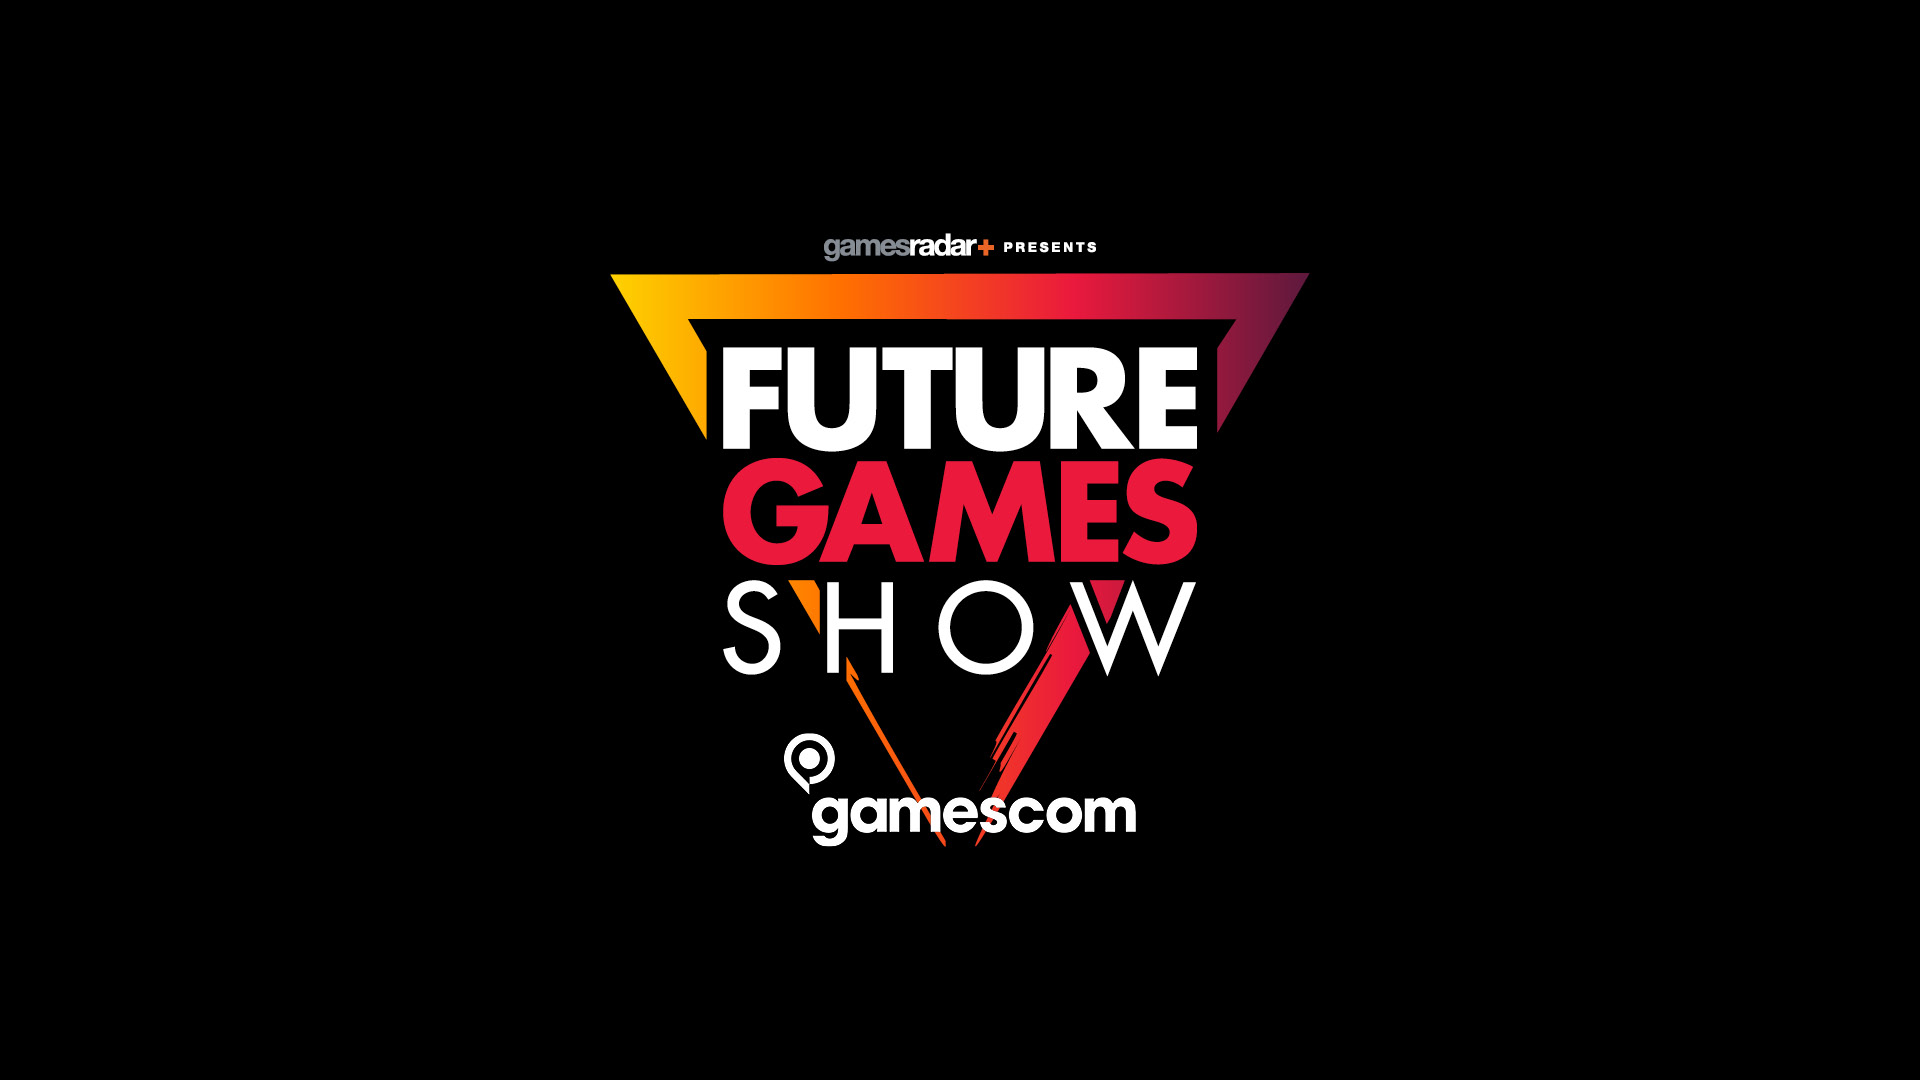 How to watch the Future Games Show